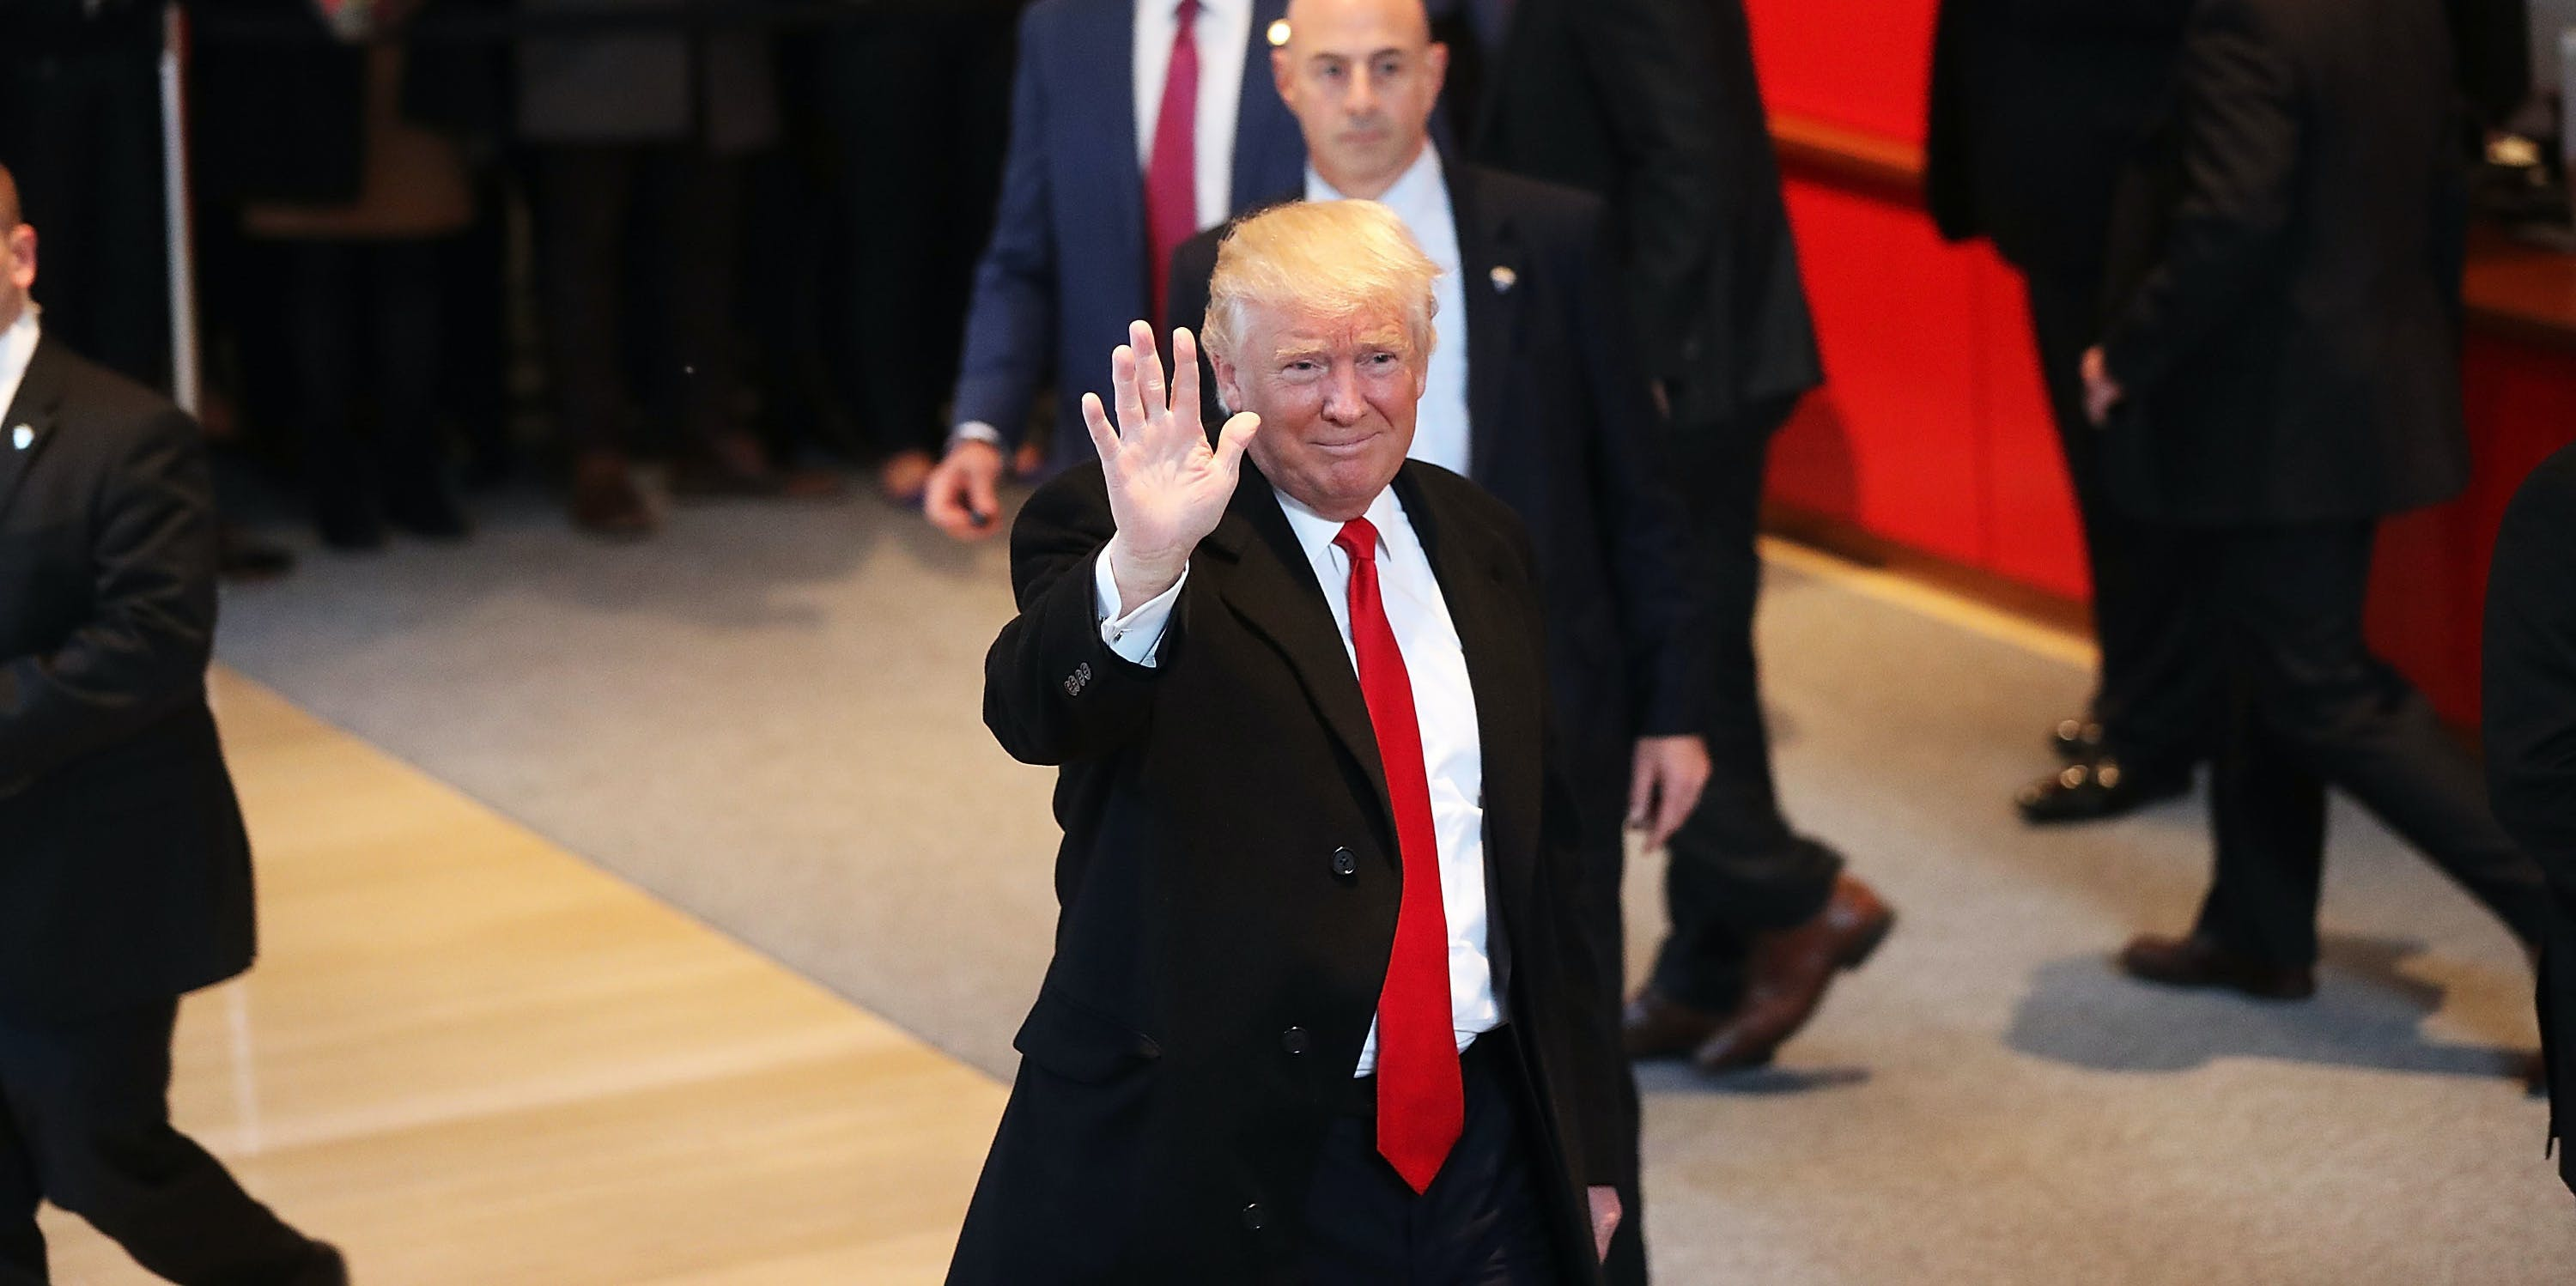 President-elect Donald Trump walks through the lobby of the New York Times following a meeting with editors at the paper on November 22, 2016 in New York City. Trump, who has held meetings with media executives over the last few days, has often had a tense relationship with many mainstream media outlets.